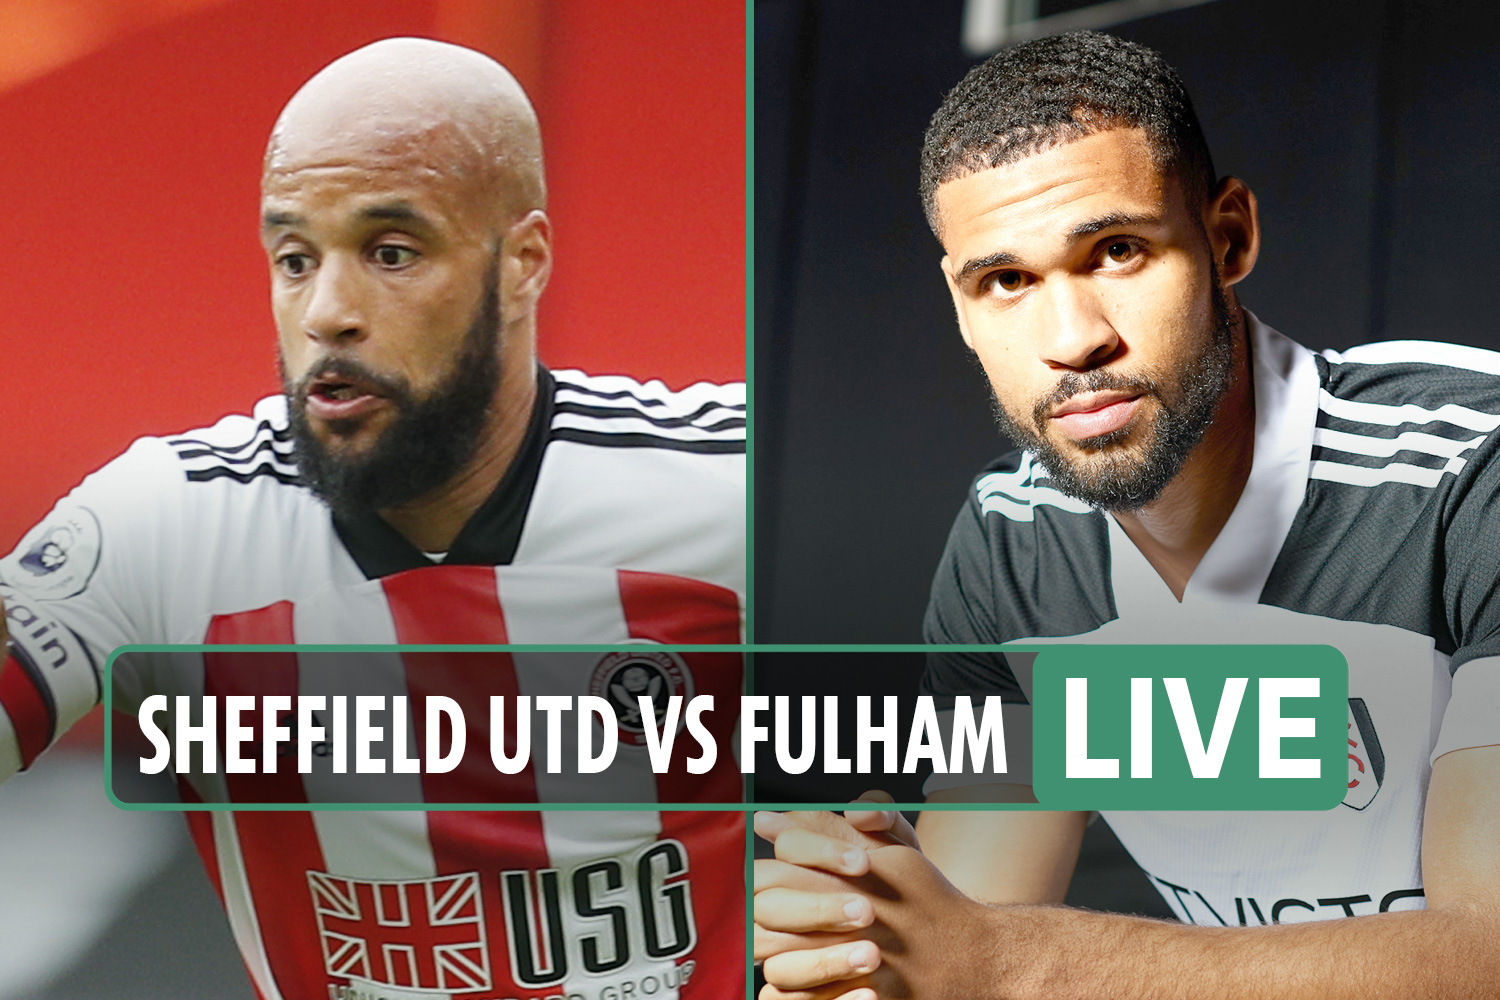 Sheffield United vs Fulham LIVE: Stream, TV channel, team news, updates for TODAY'S Premier League clash